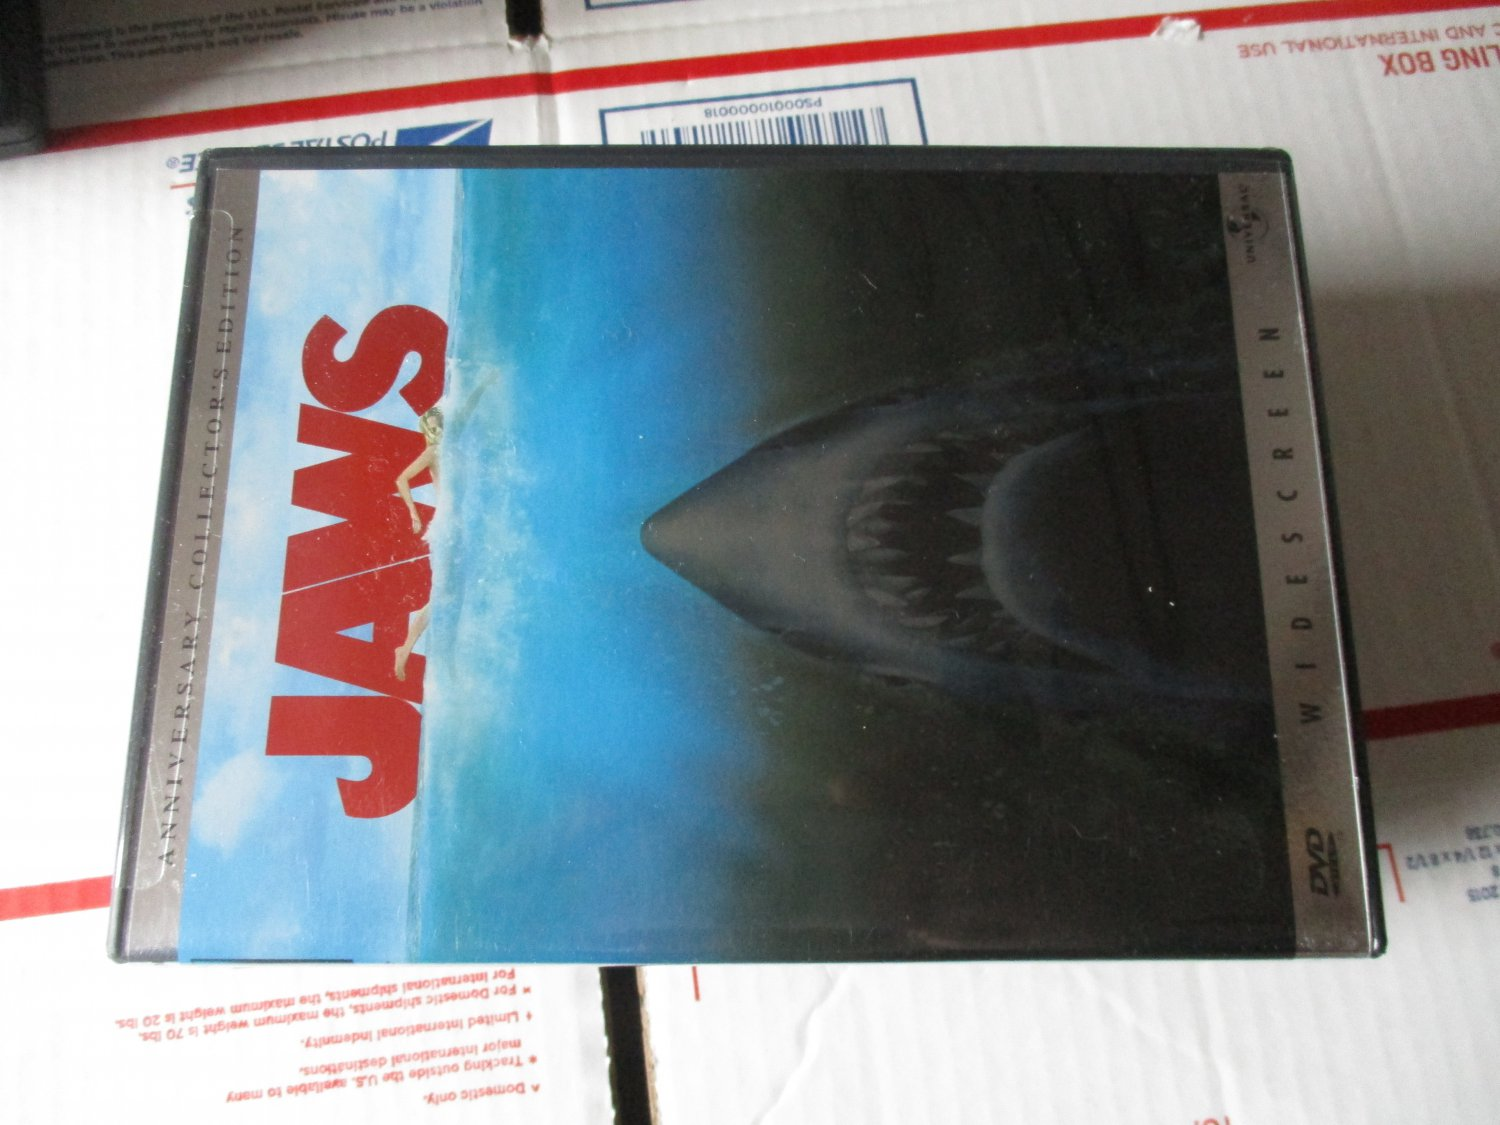 Jaws 25th Anniversary Collector's Edition dvd